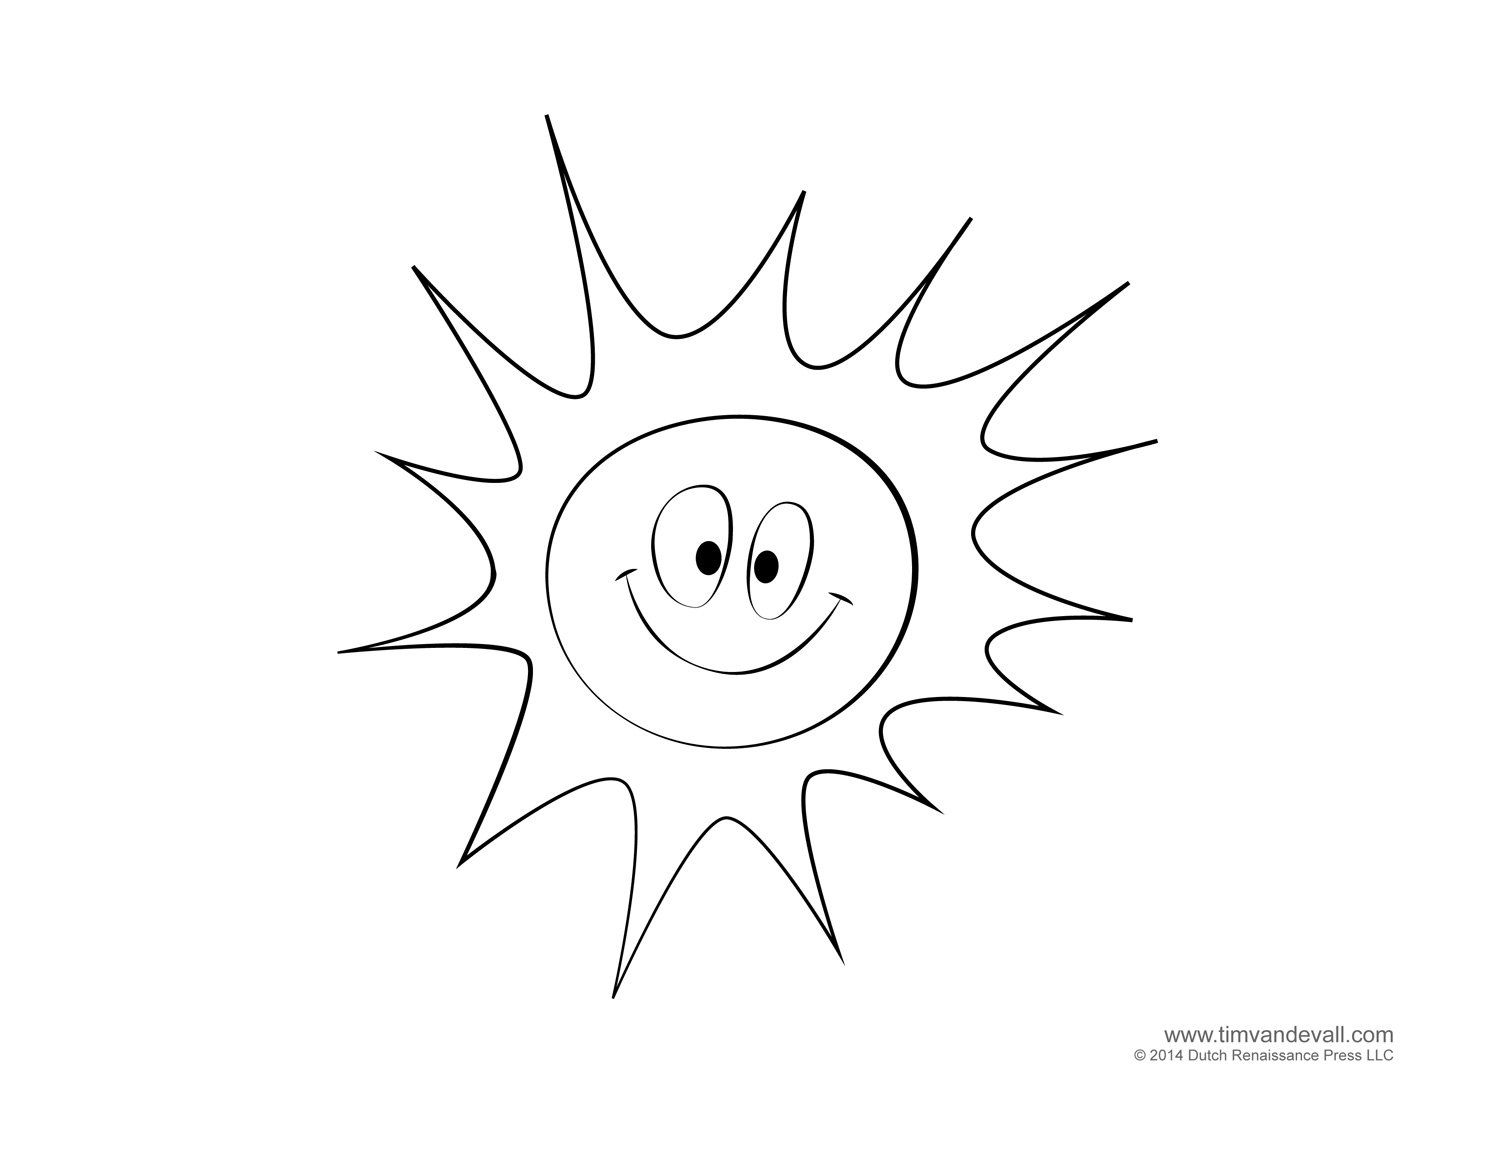 Cirrus Clouds Drawing at GetDrawings.com | Free for personal use ...